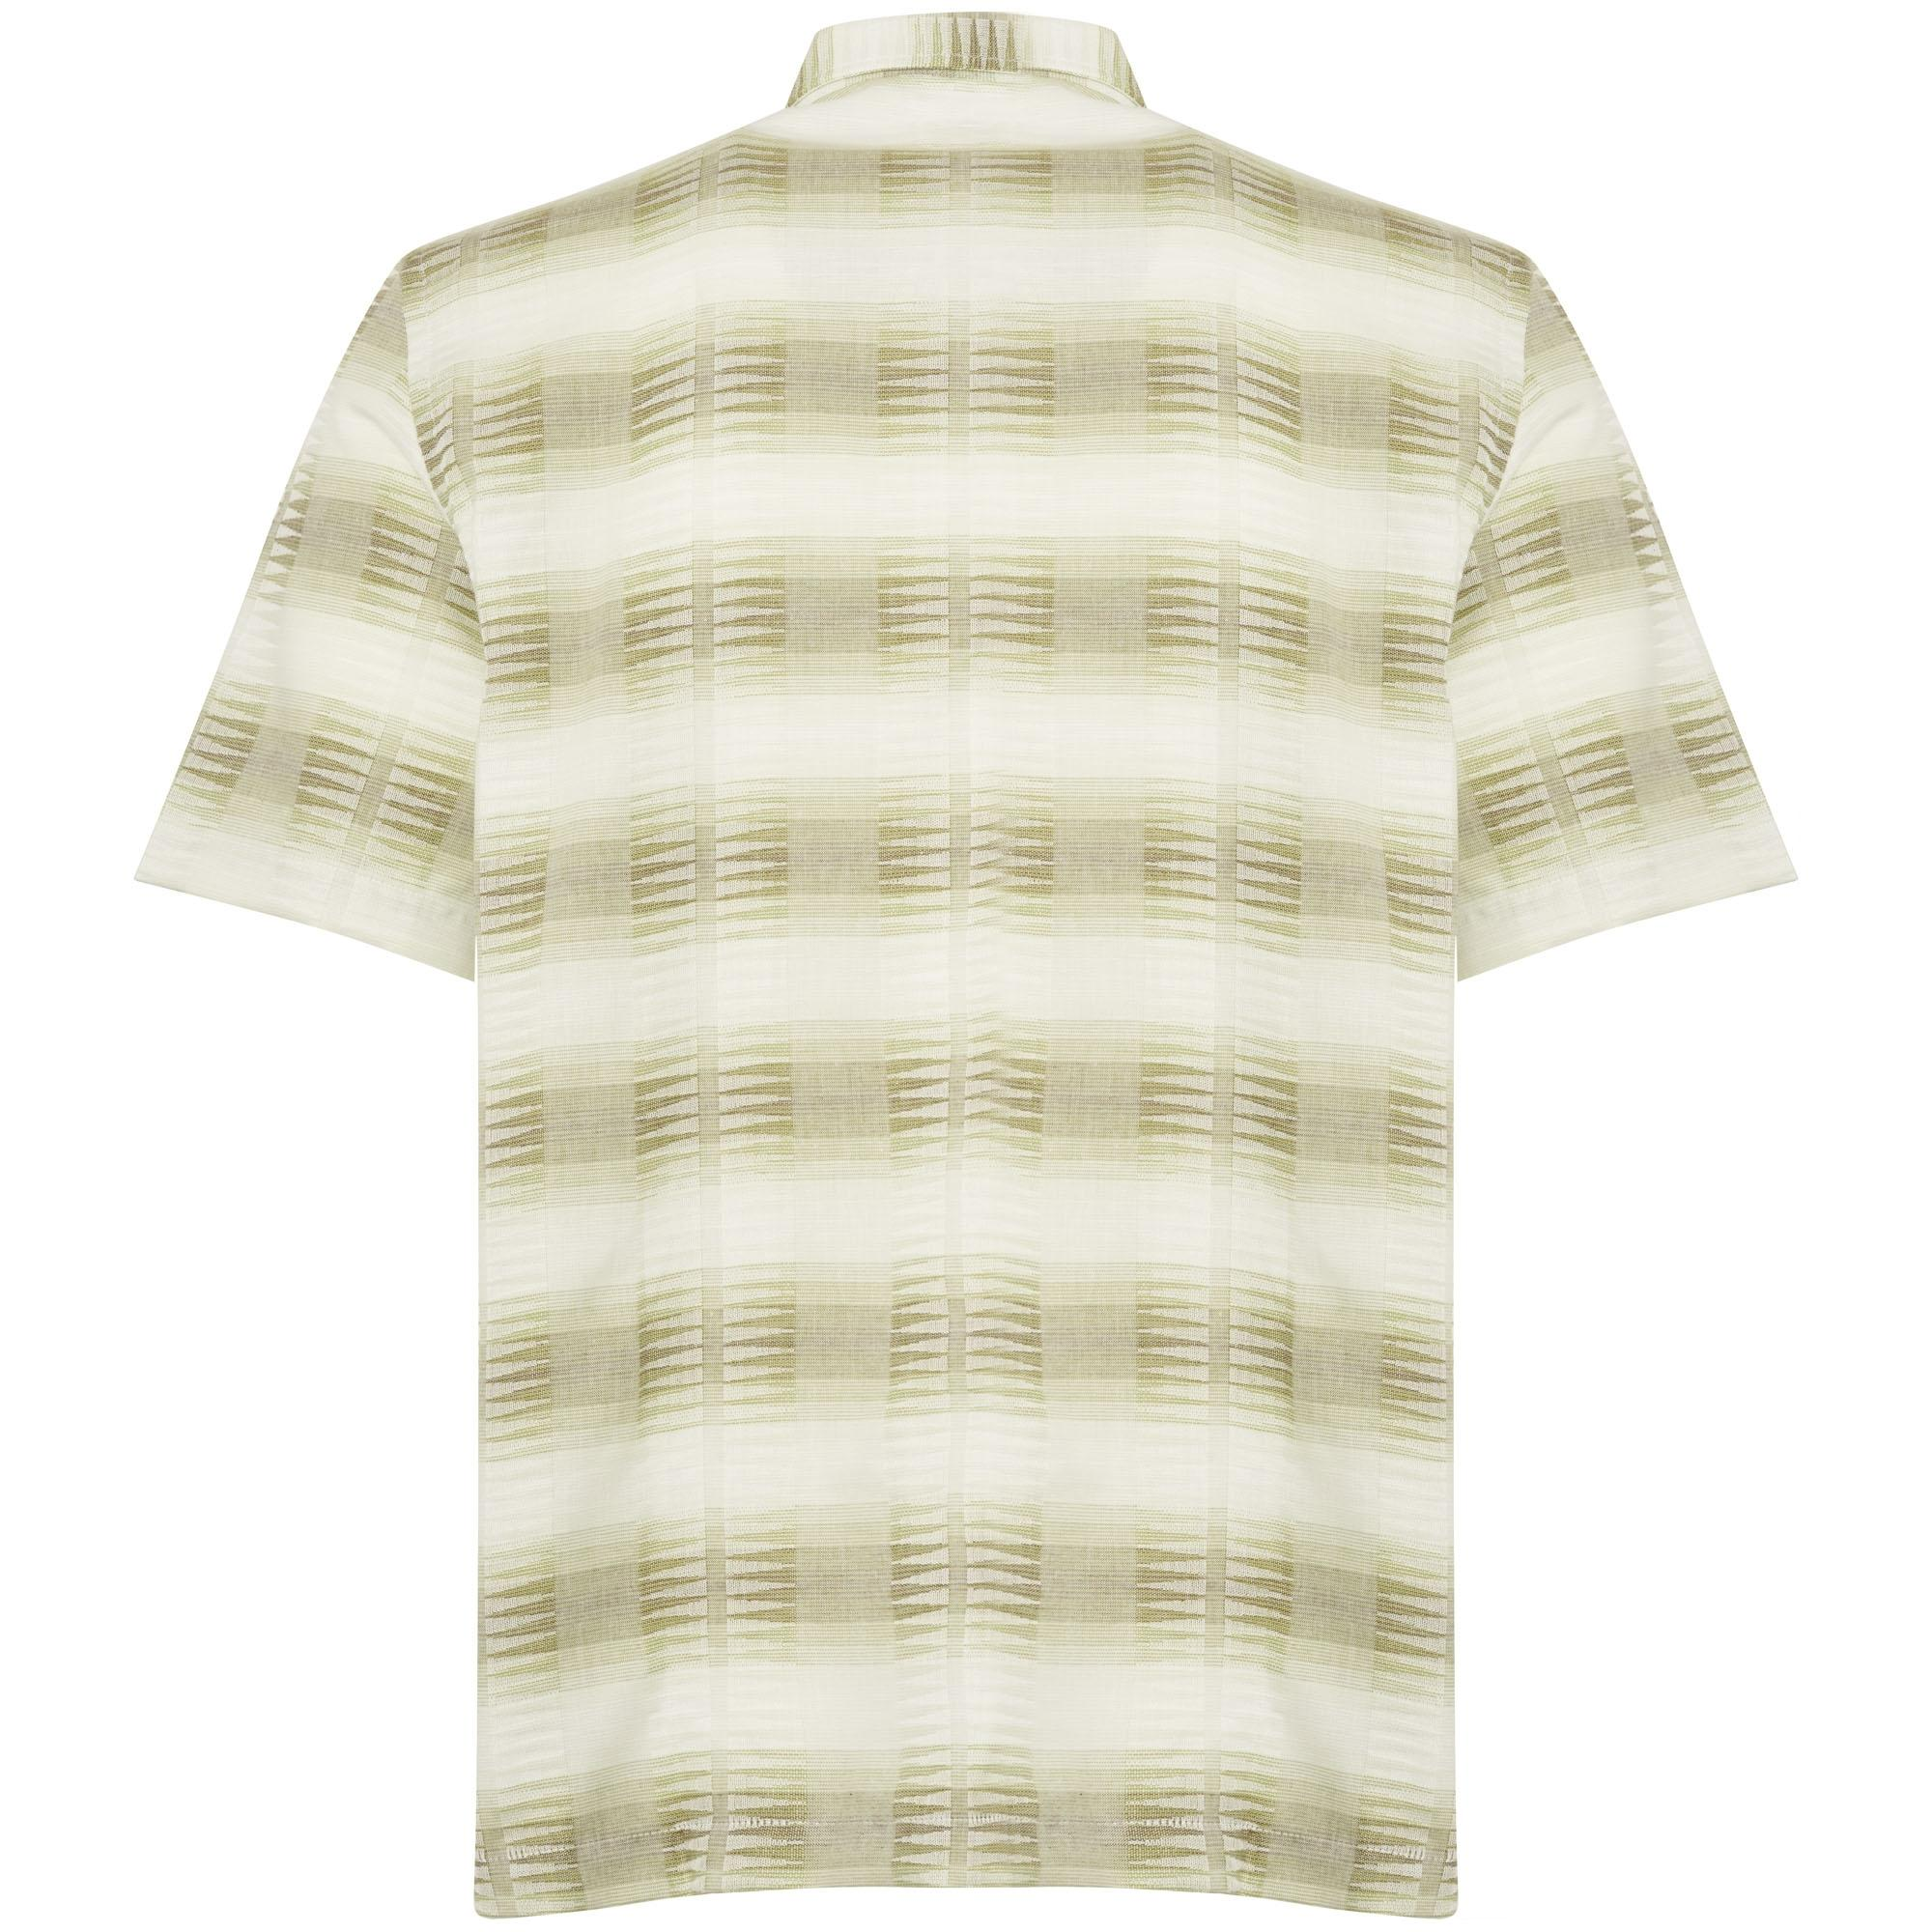 Universal Works Cotton Green Road Shirt for Men